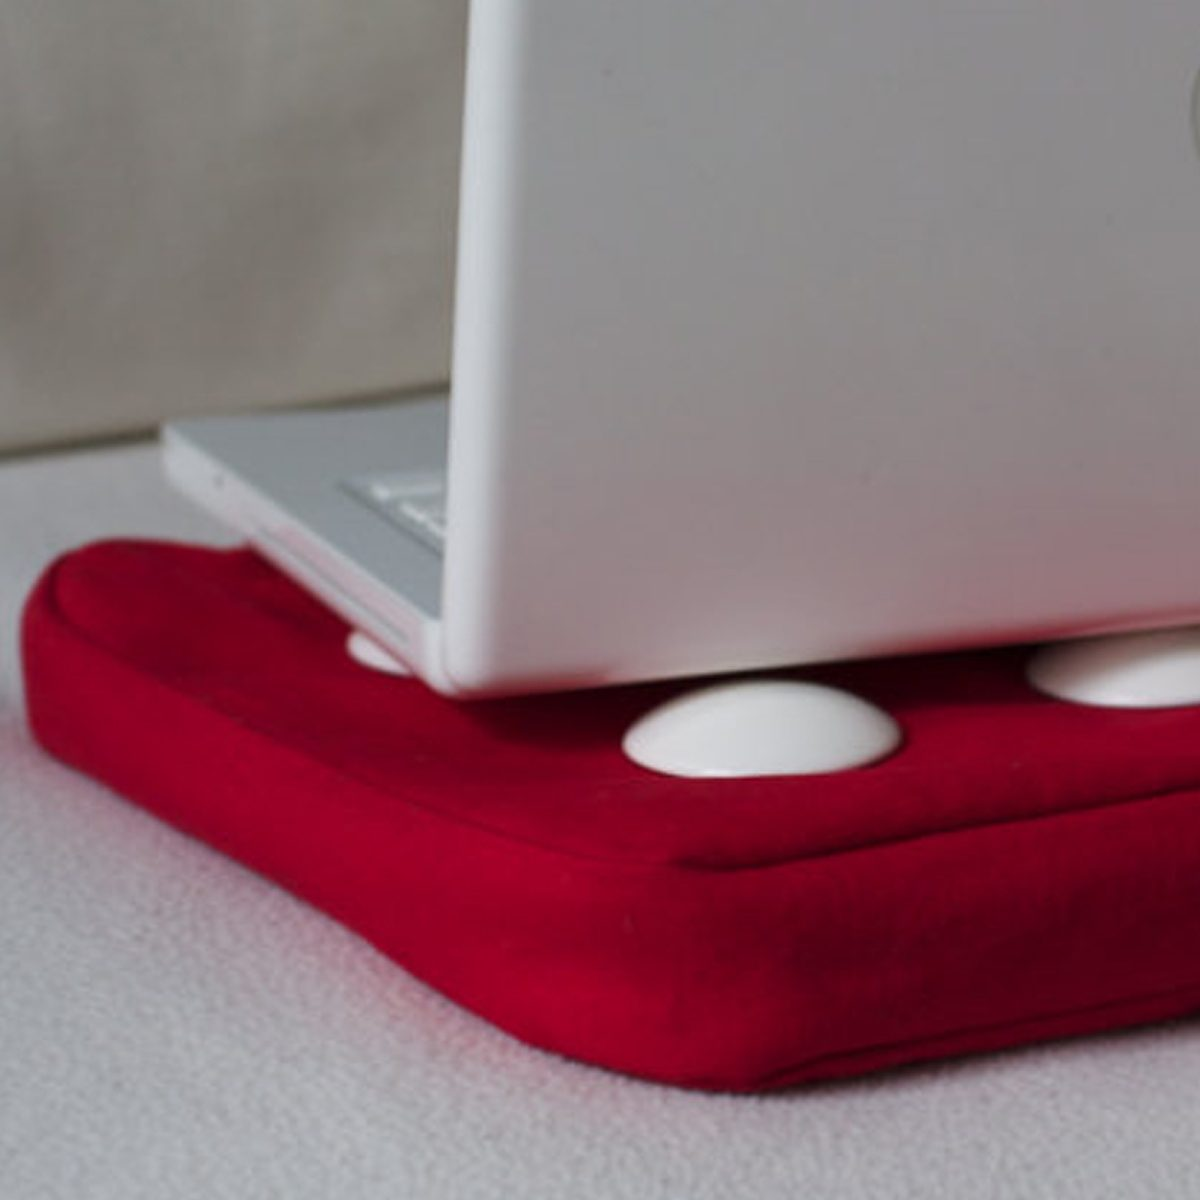 BOSIGN Bosign SURF PILLOW Laptop Kissen rot-weiß